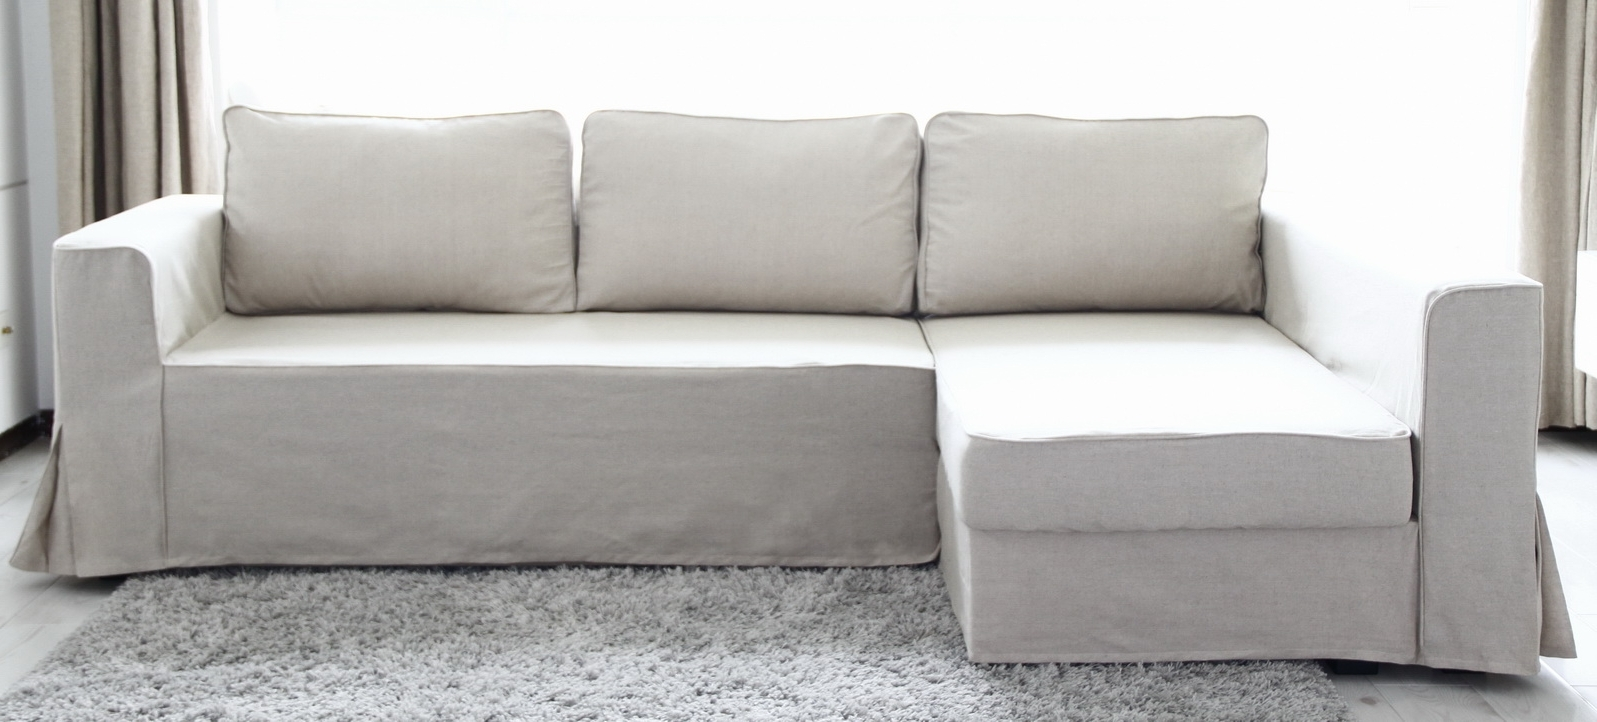 Best Sleeper Sofa At Ikea – S3Net – Sectional Sofas Sale : S3Net In 2019 Ikea Sectional Sleeper Sofas (View 18 of 20)